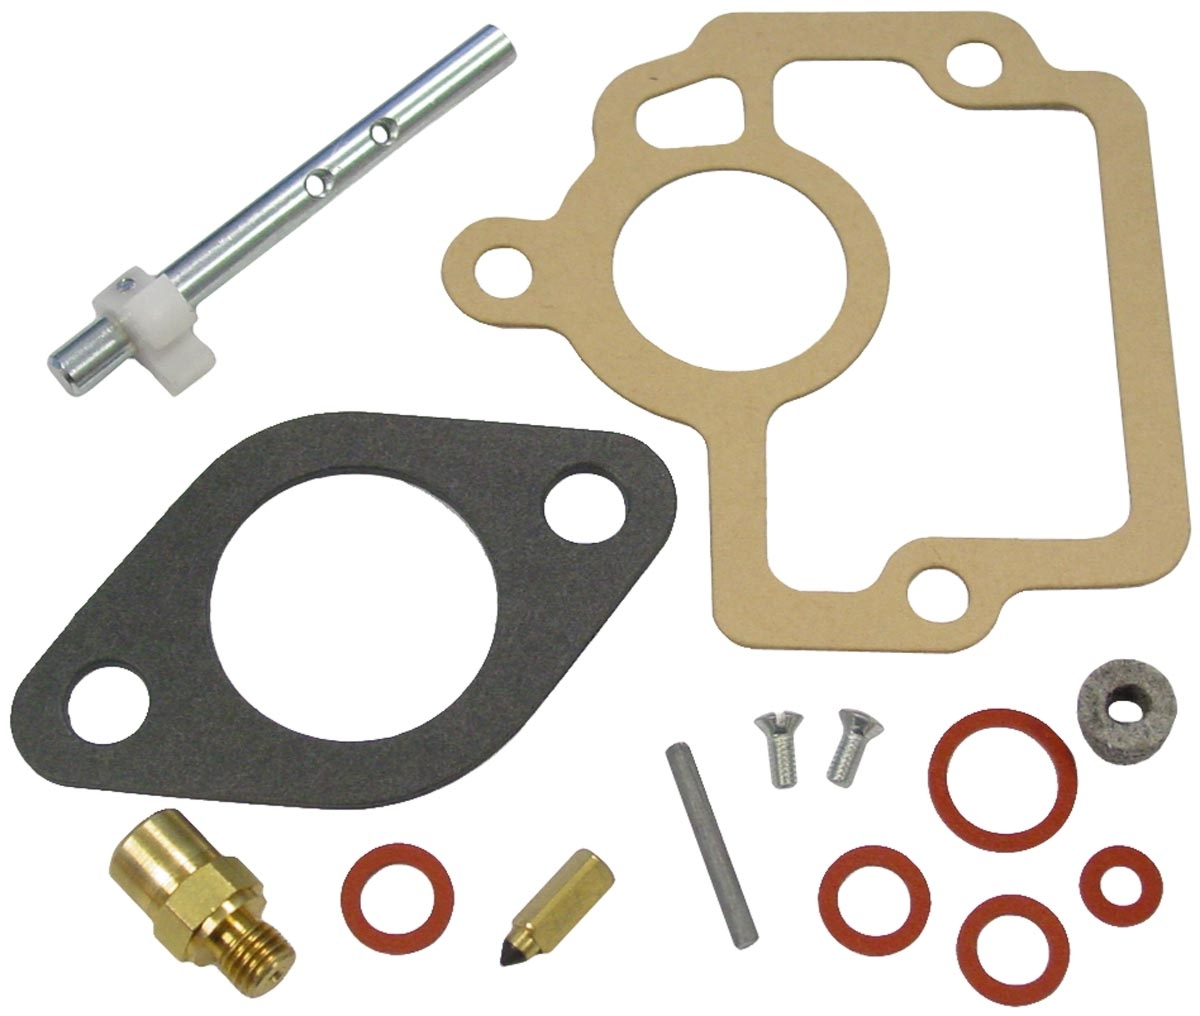 BASIC CARBURETOR REPAIR KIT